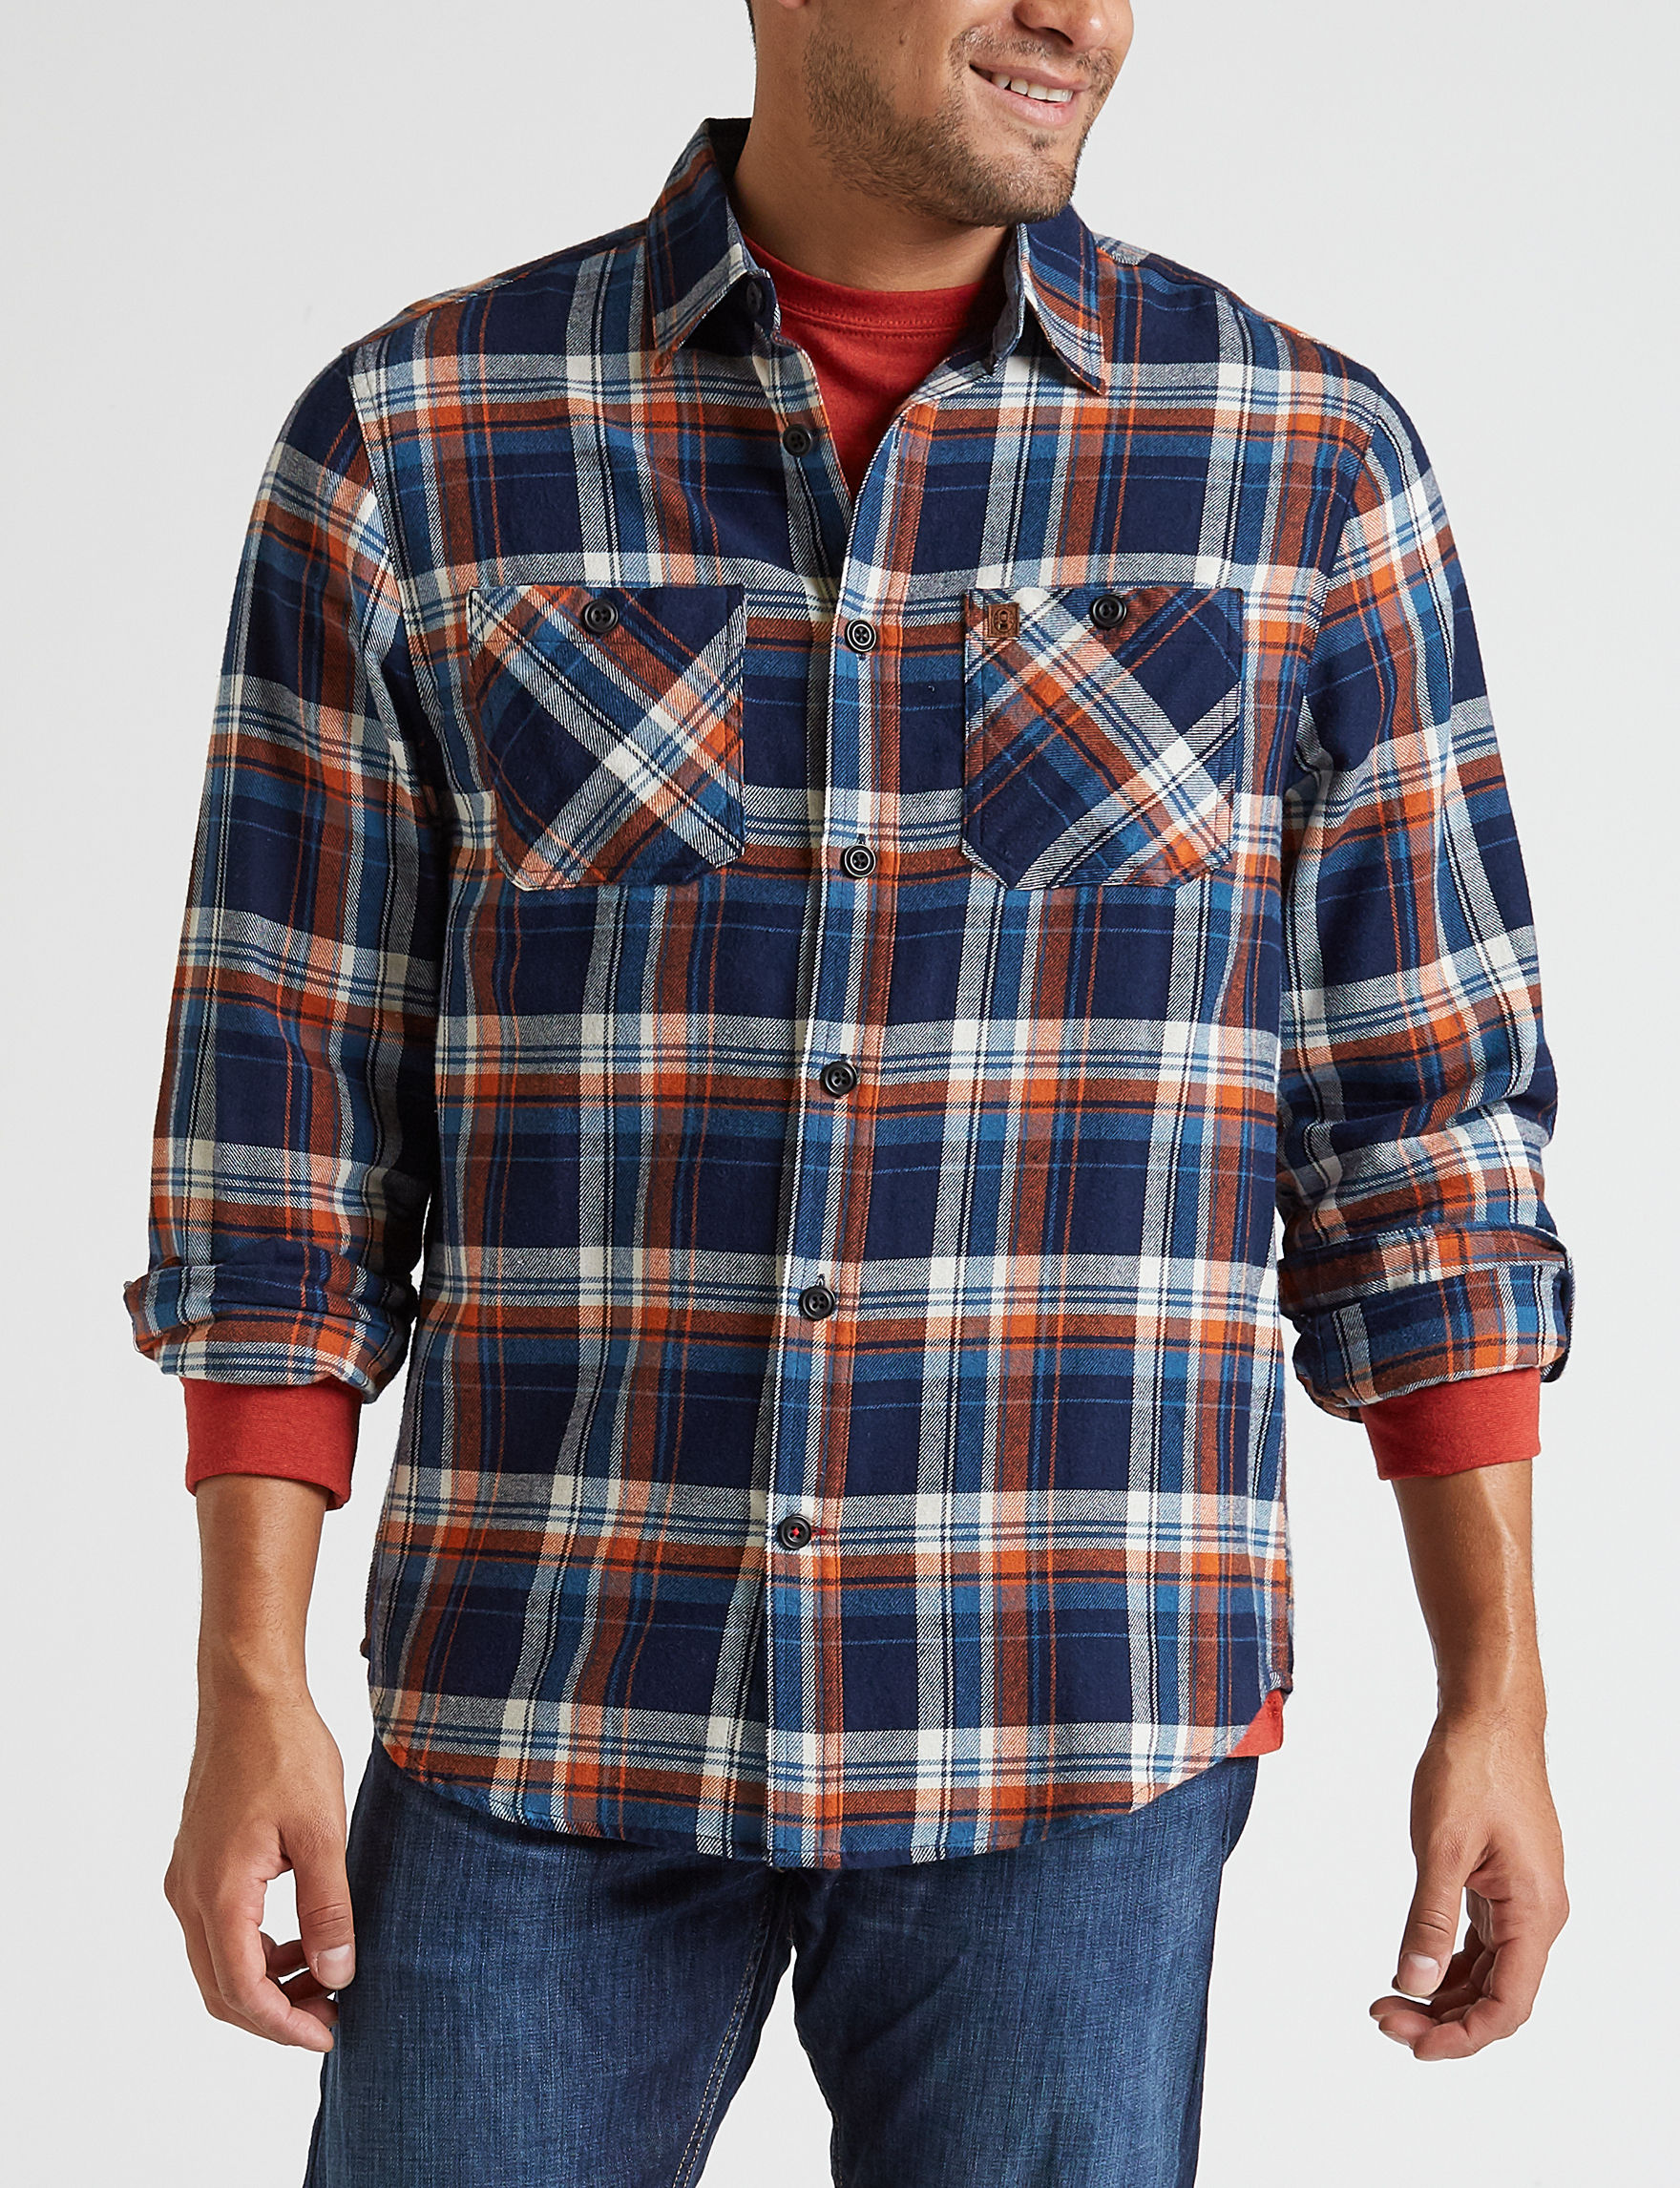 Coleman Navy Plaid Casual Button Down Shirts